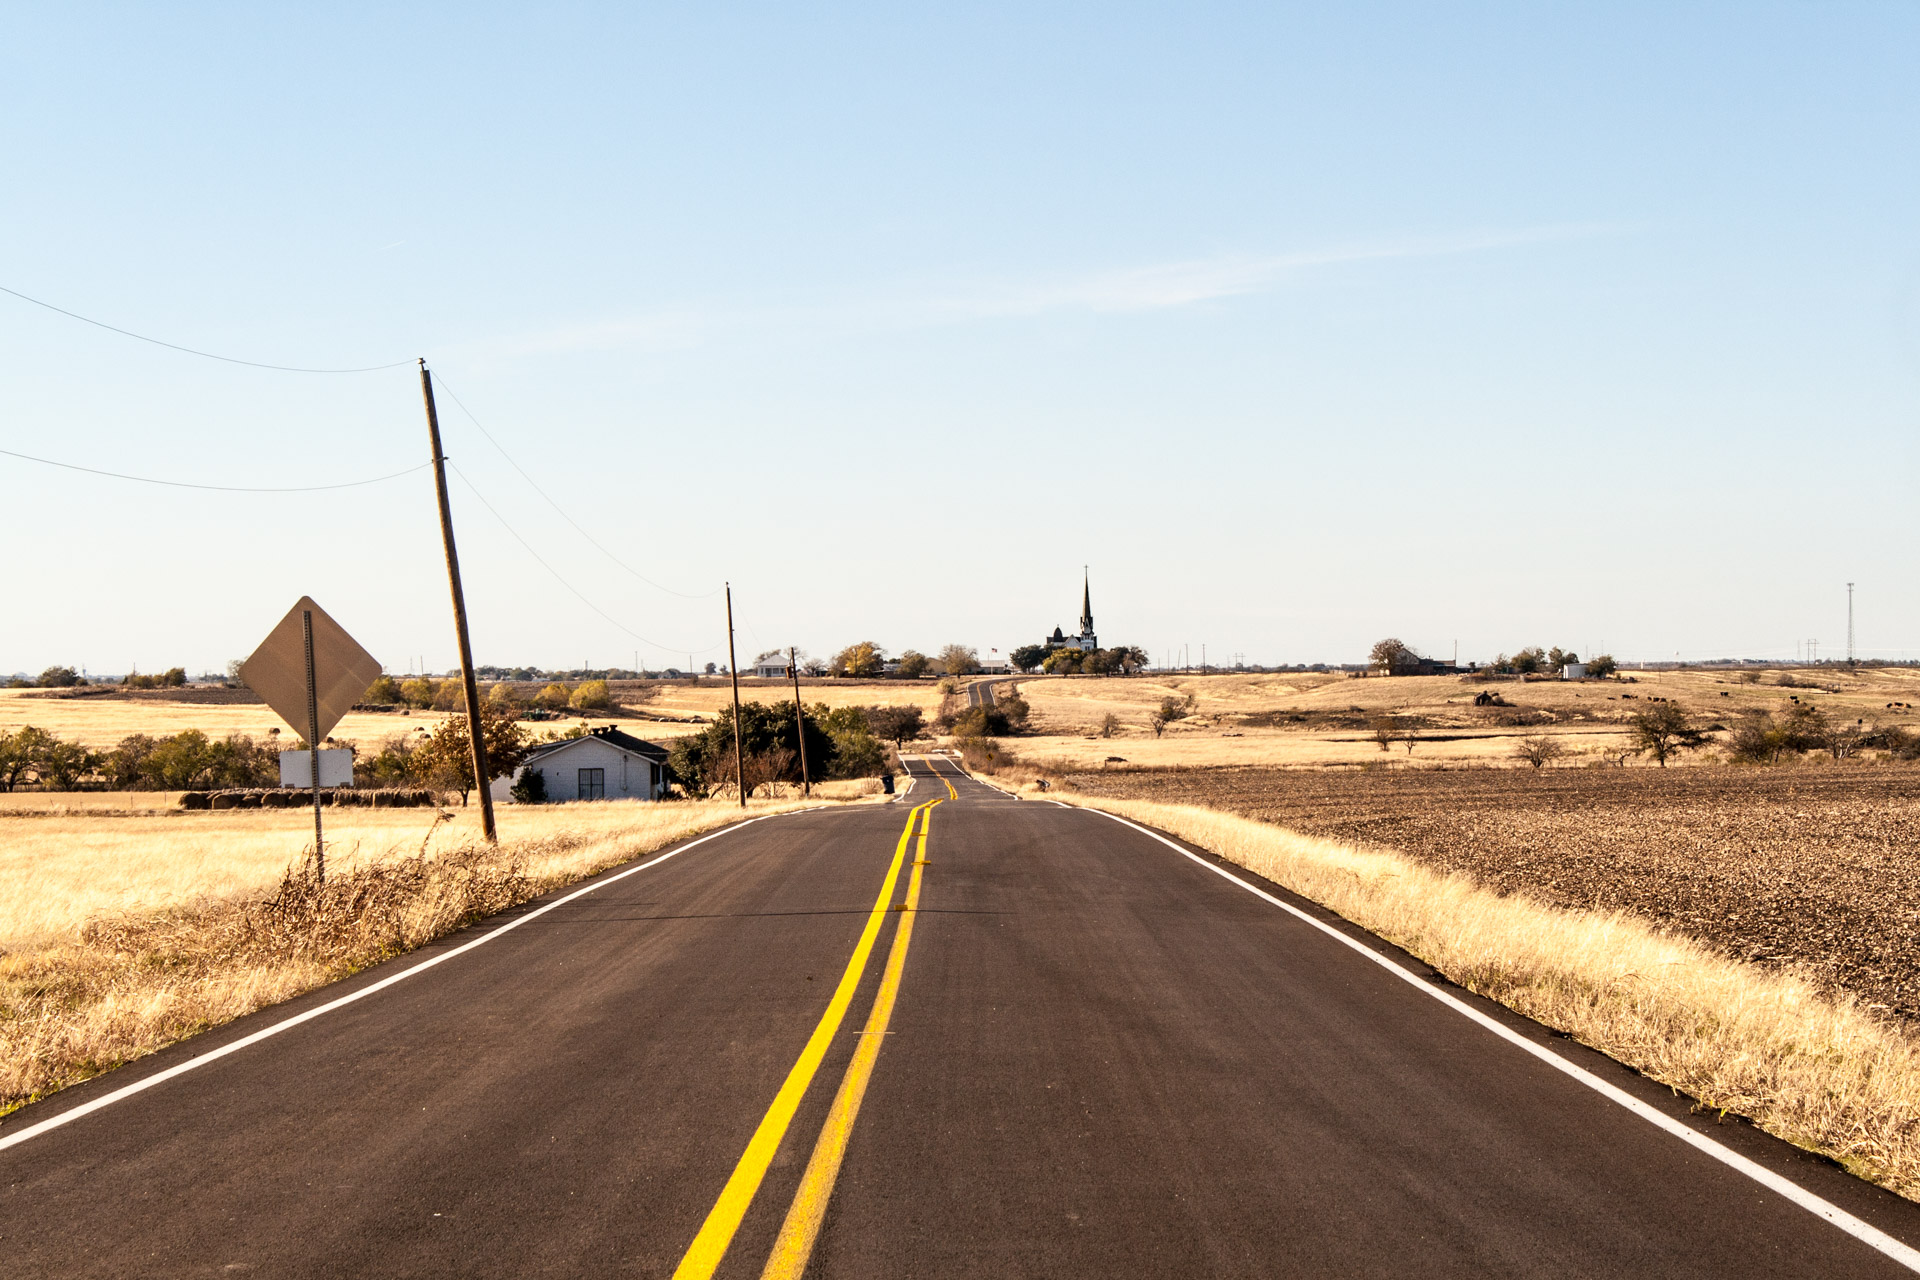 Manor, Texas - A Road to the New Sweden Evangelical Lutheran Church